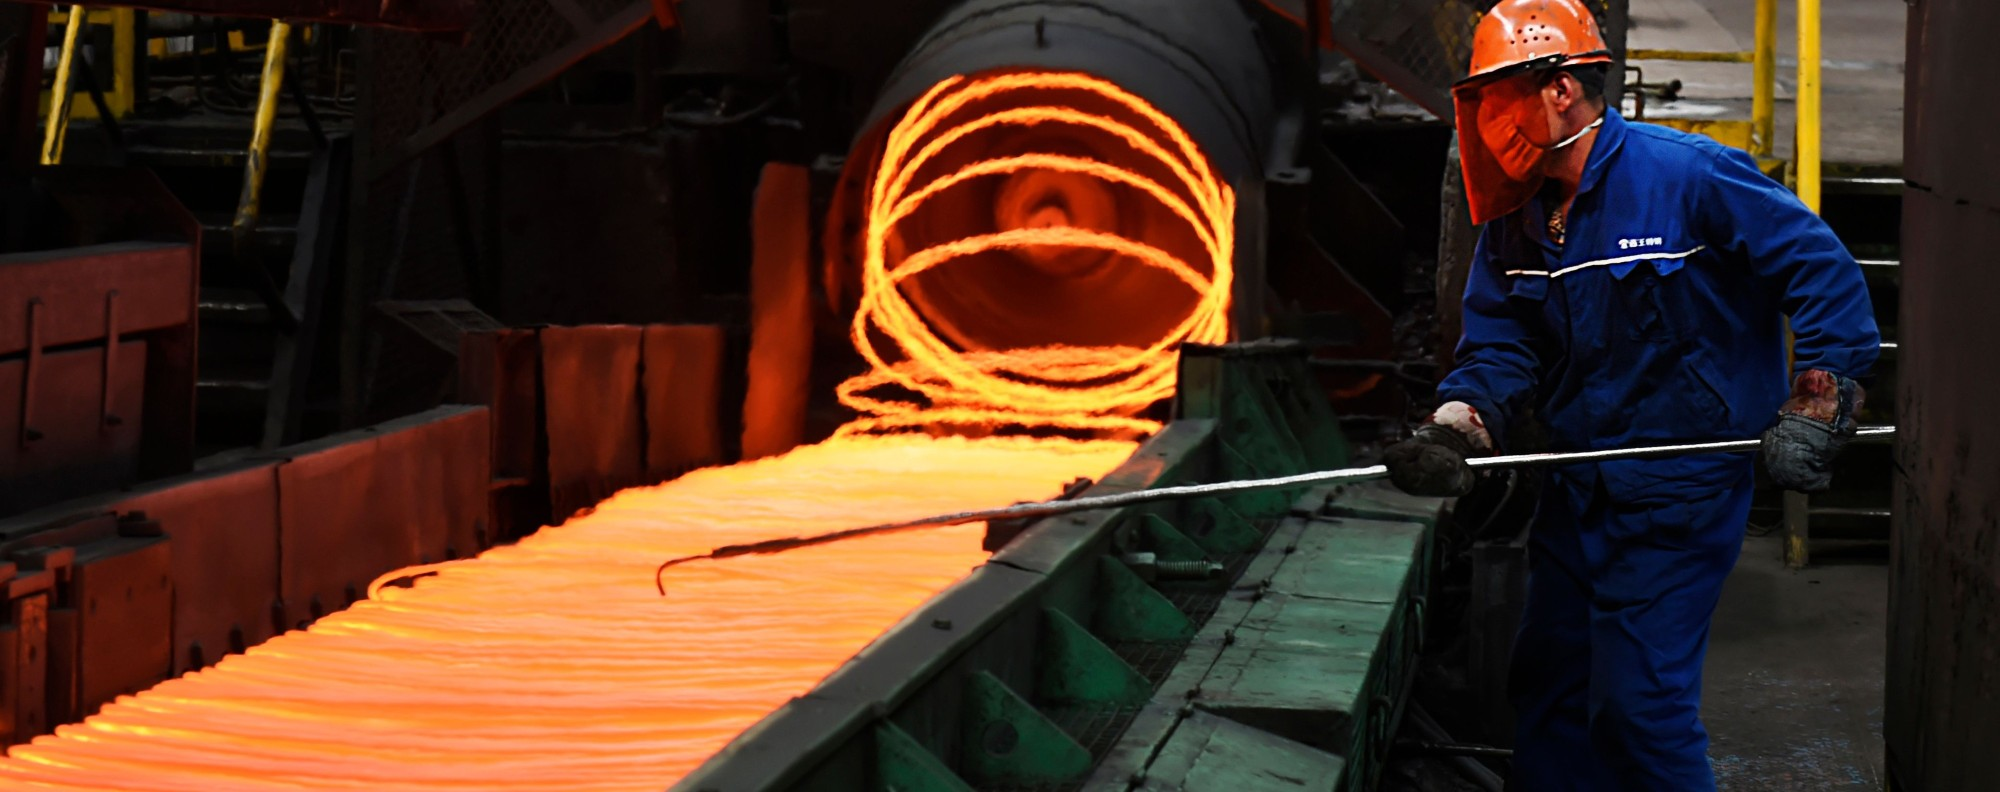 A steel plant in Zouping, China. Photo: AFP